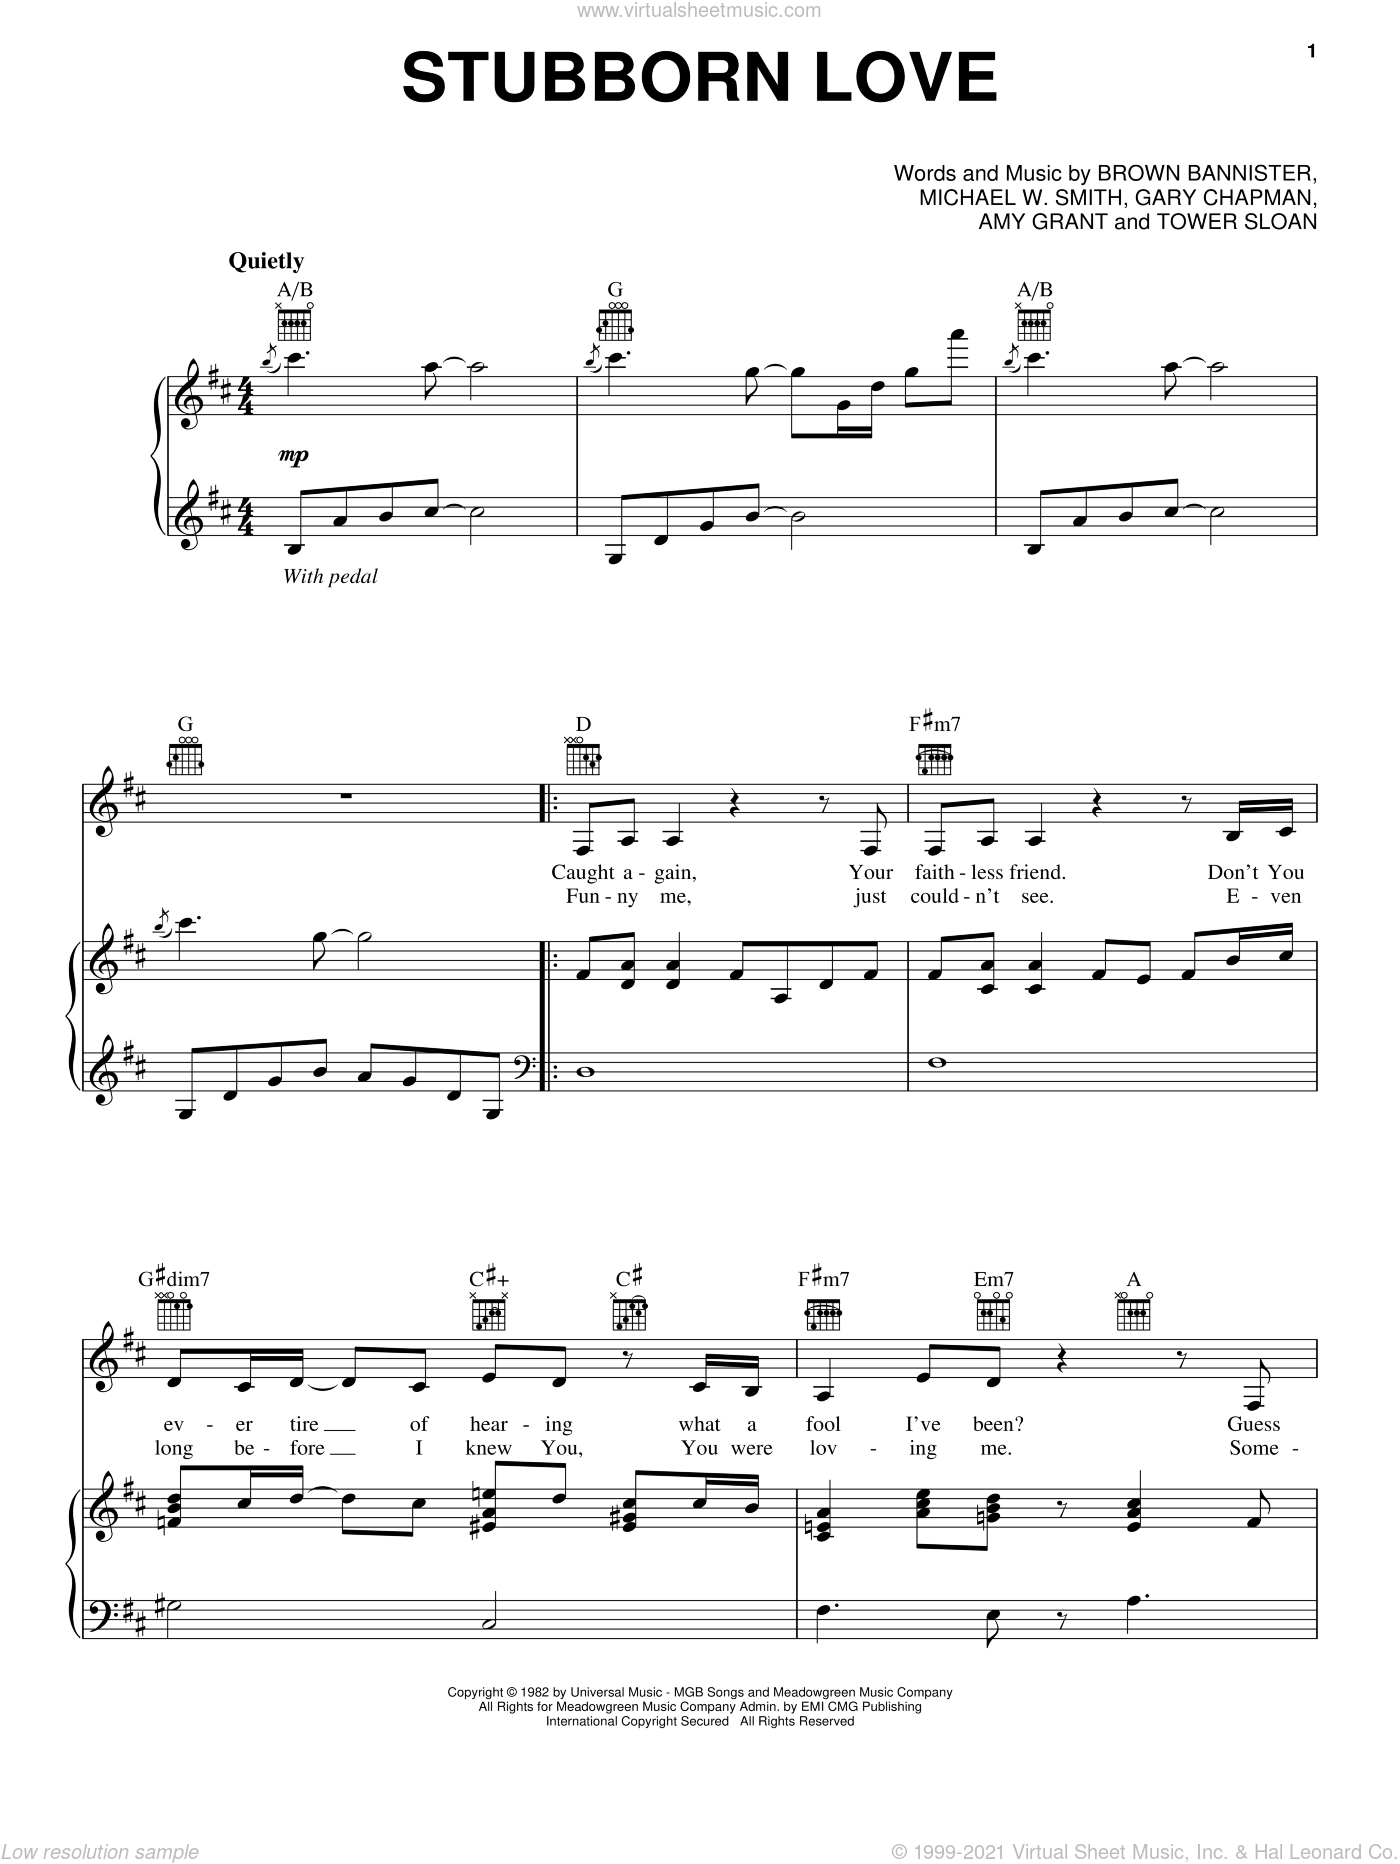 Stubborn Love sheet music for voice, piano or guitar by Sloan Towner